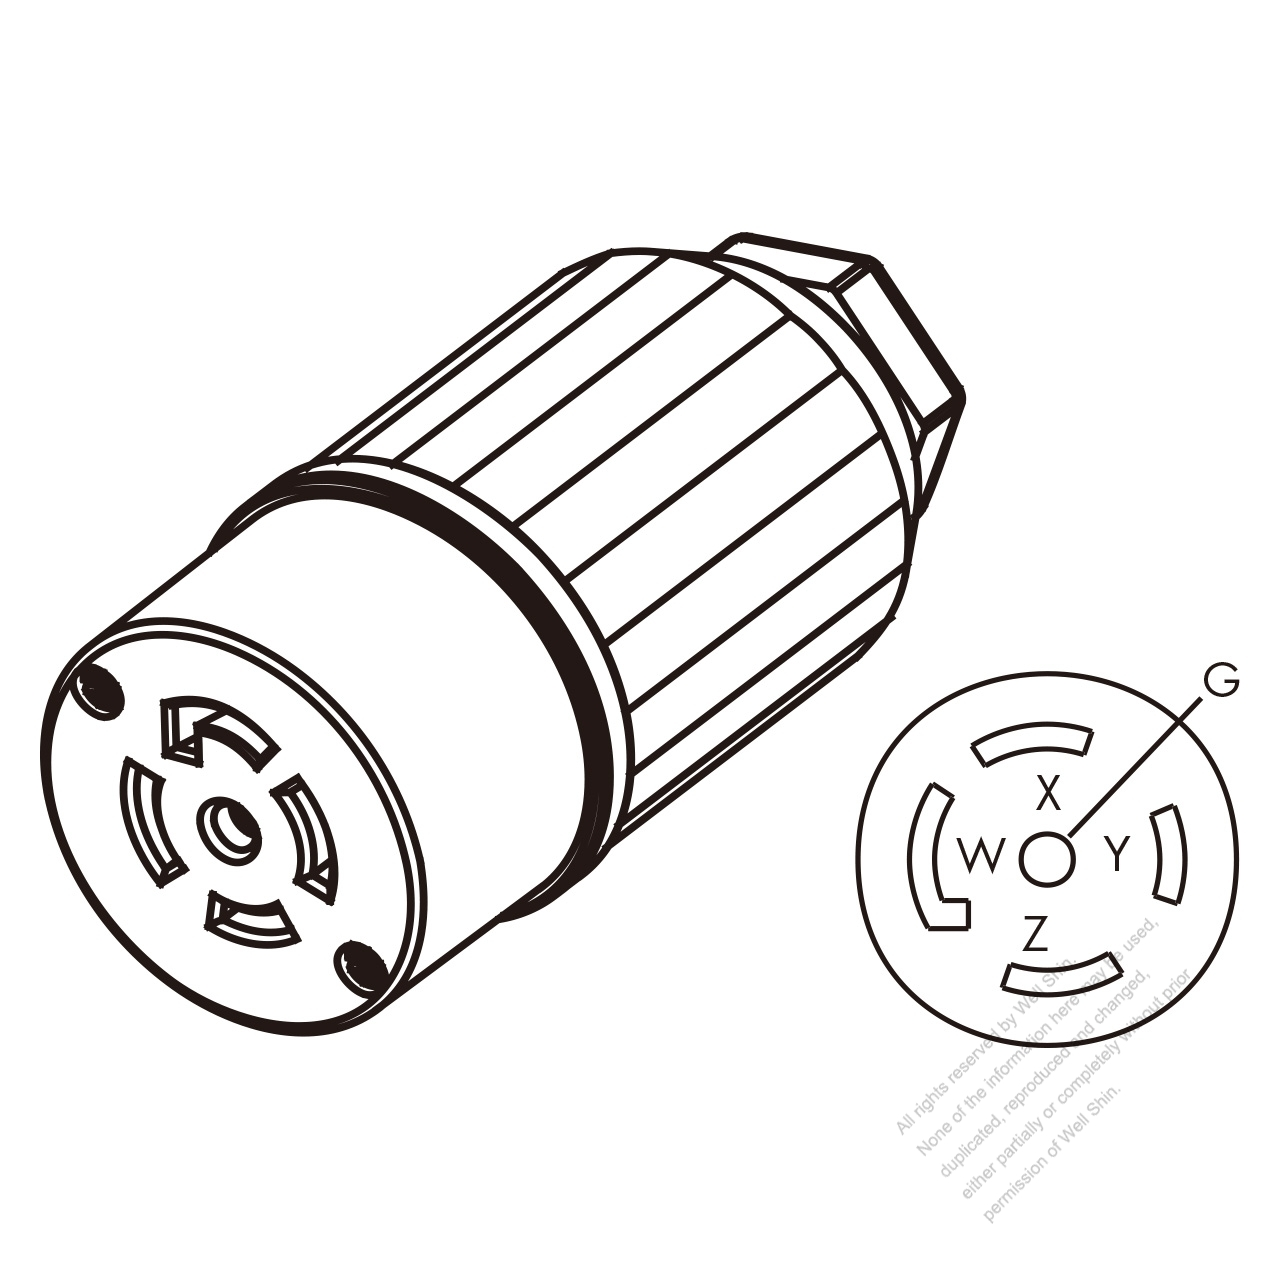 USA/Canada Twist-Lock Connector (NEMA L21-30R) 5-Pin